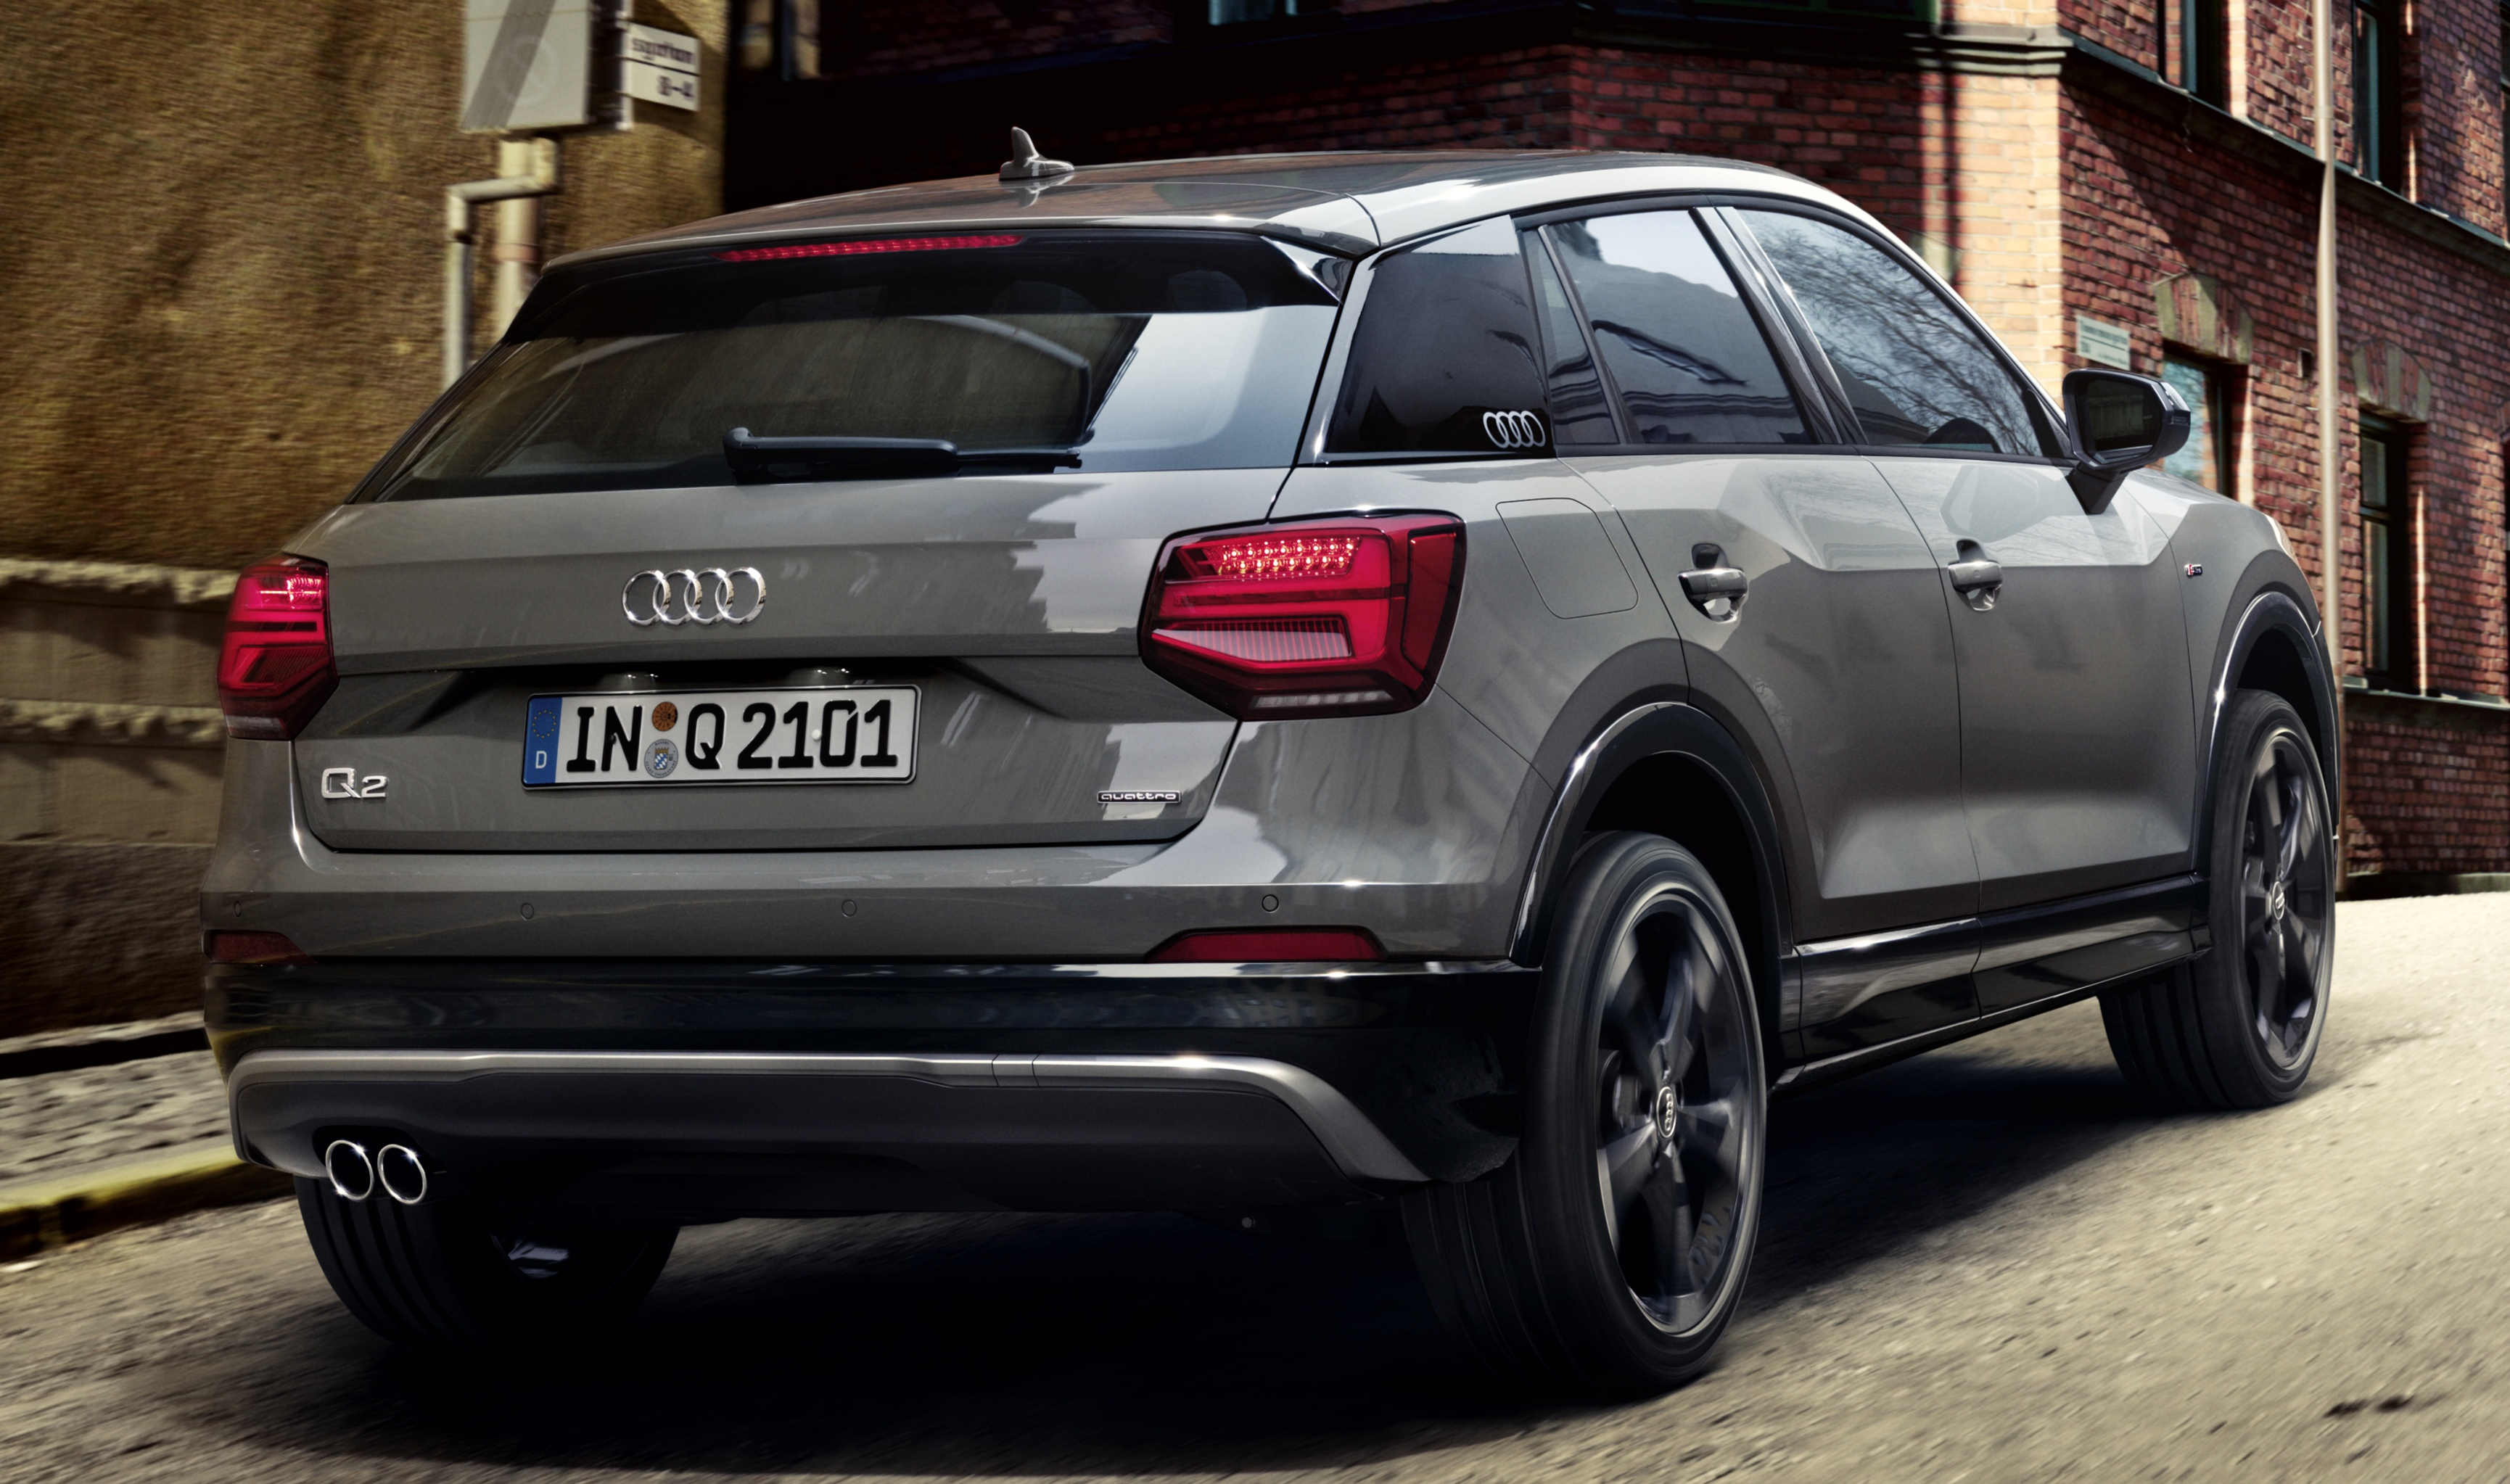 audi q2 edition 1 revealed with visual enhancements paul. Black Bedroom Furniture Sets. Home Design Ideas